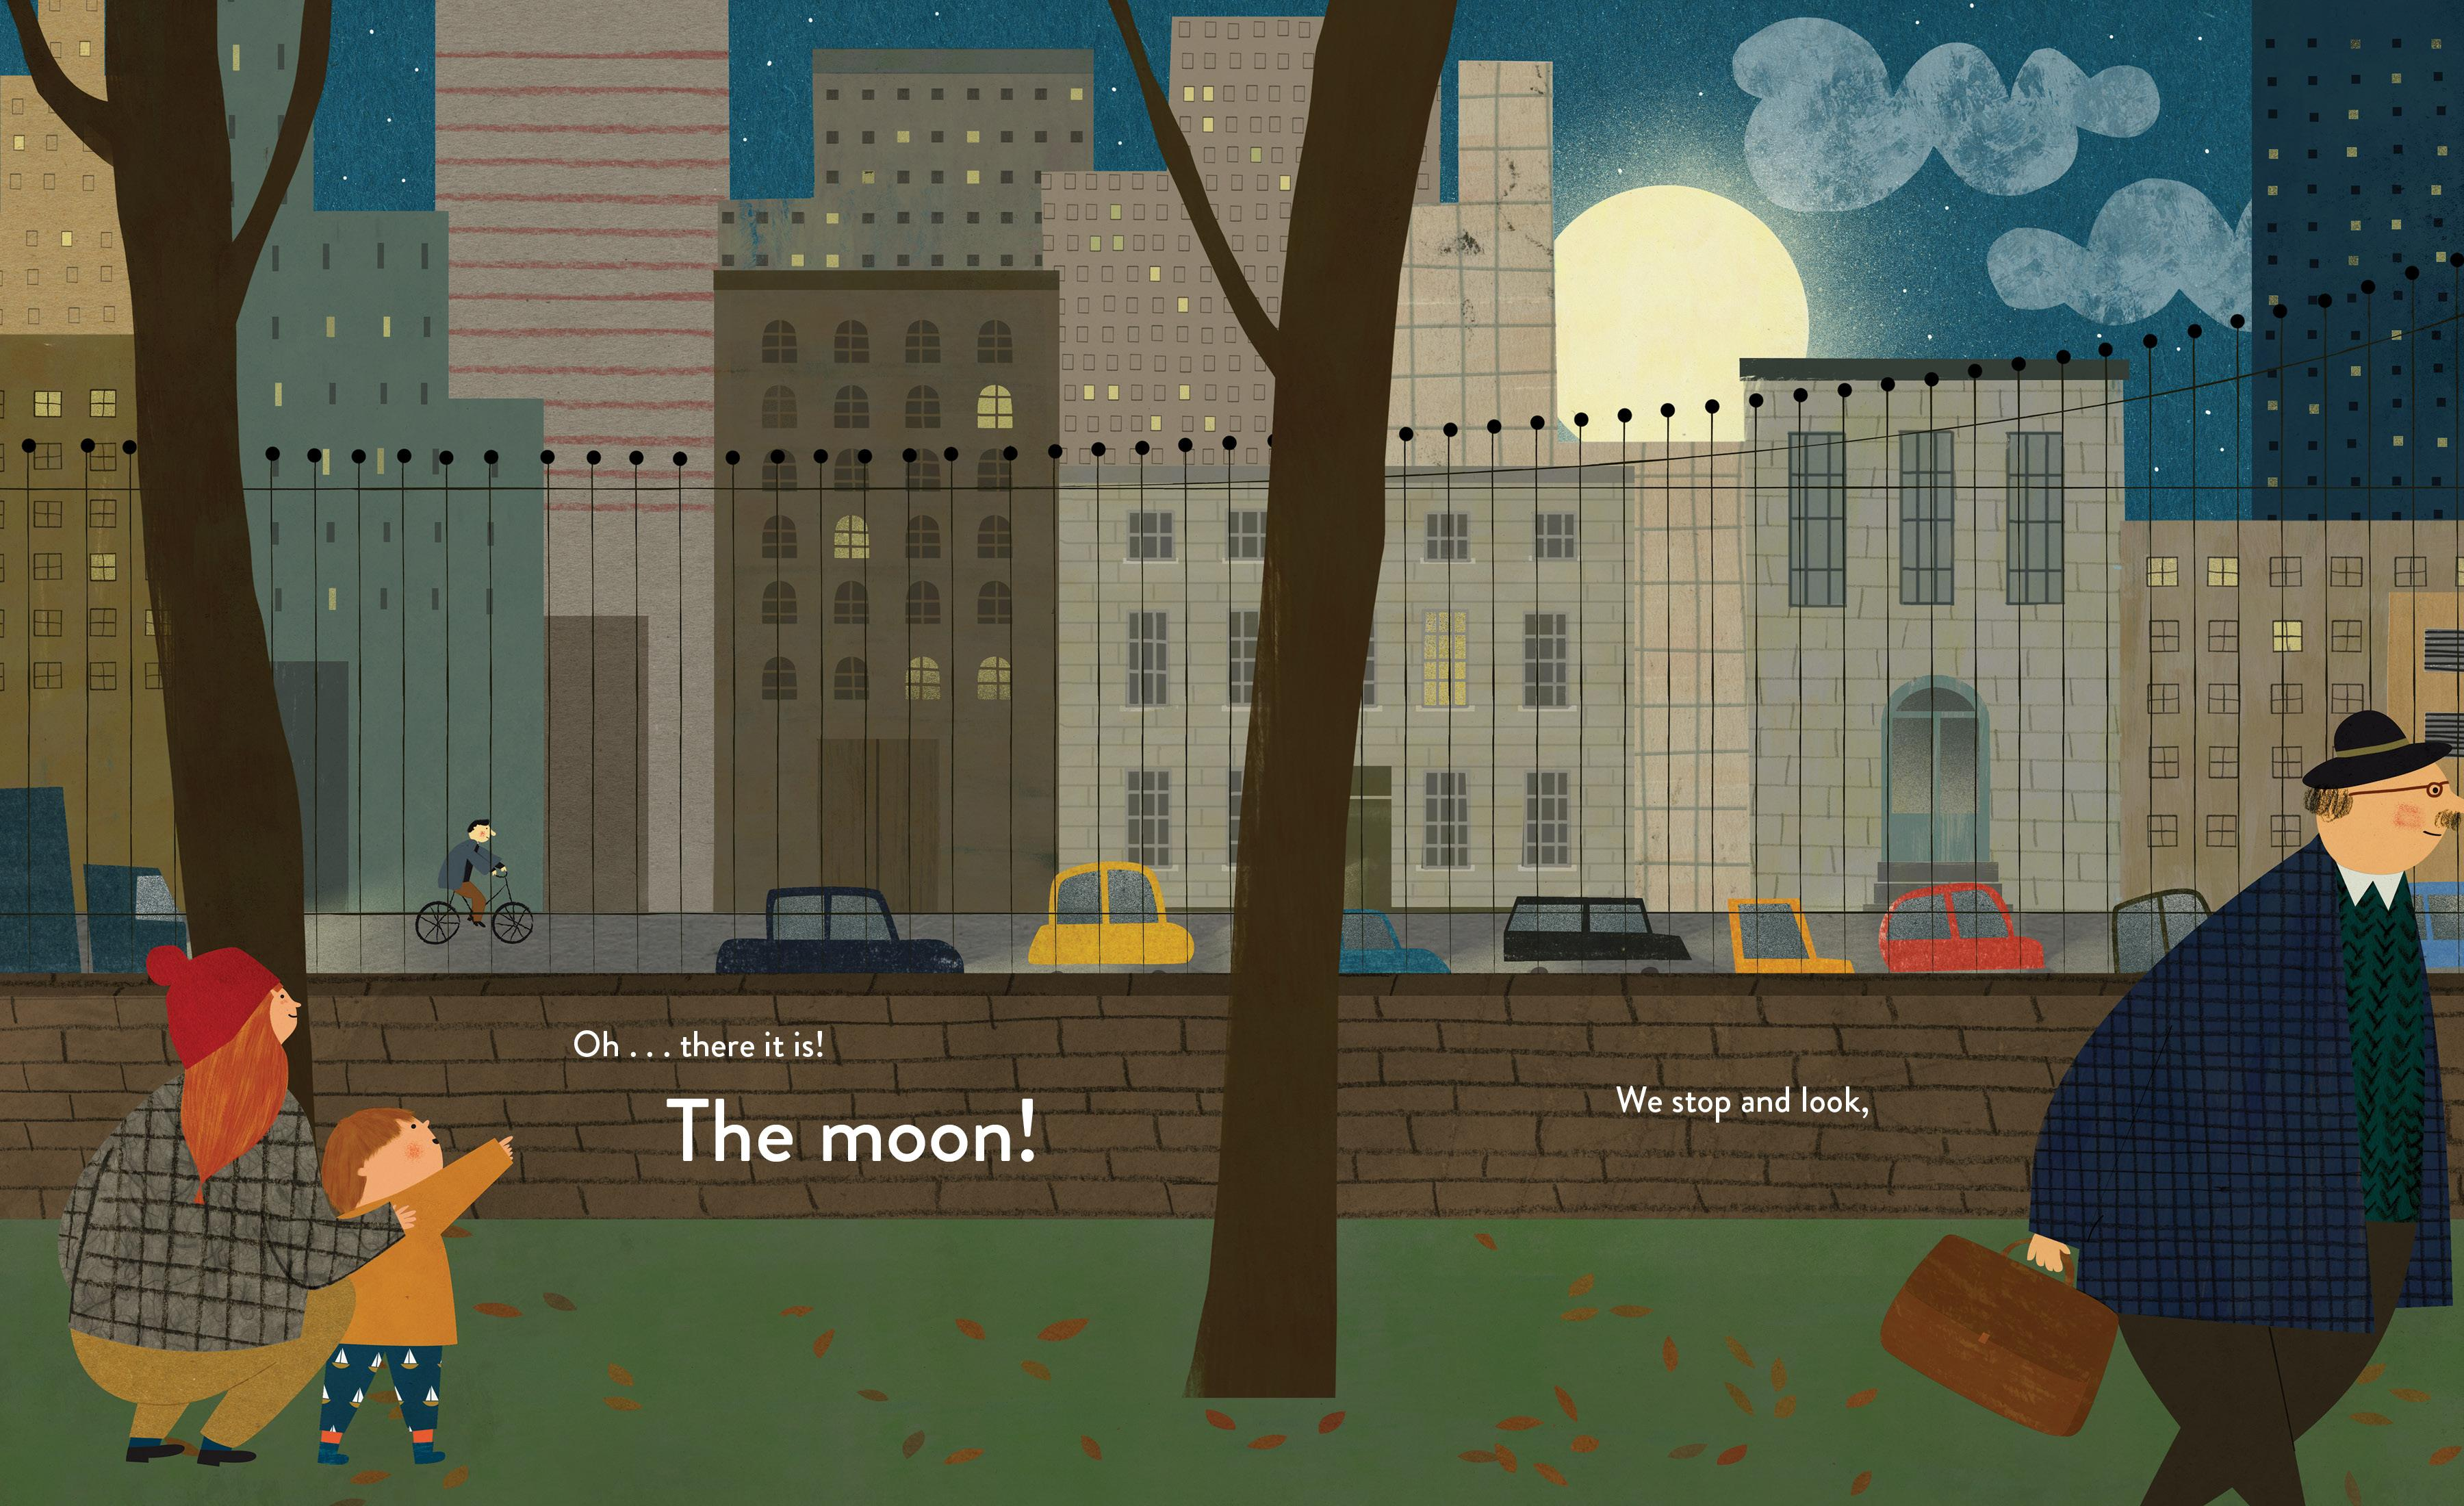 celebrate-picture-books-picture-book-review-city-moon-moon-in-park